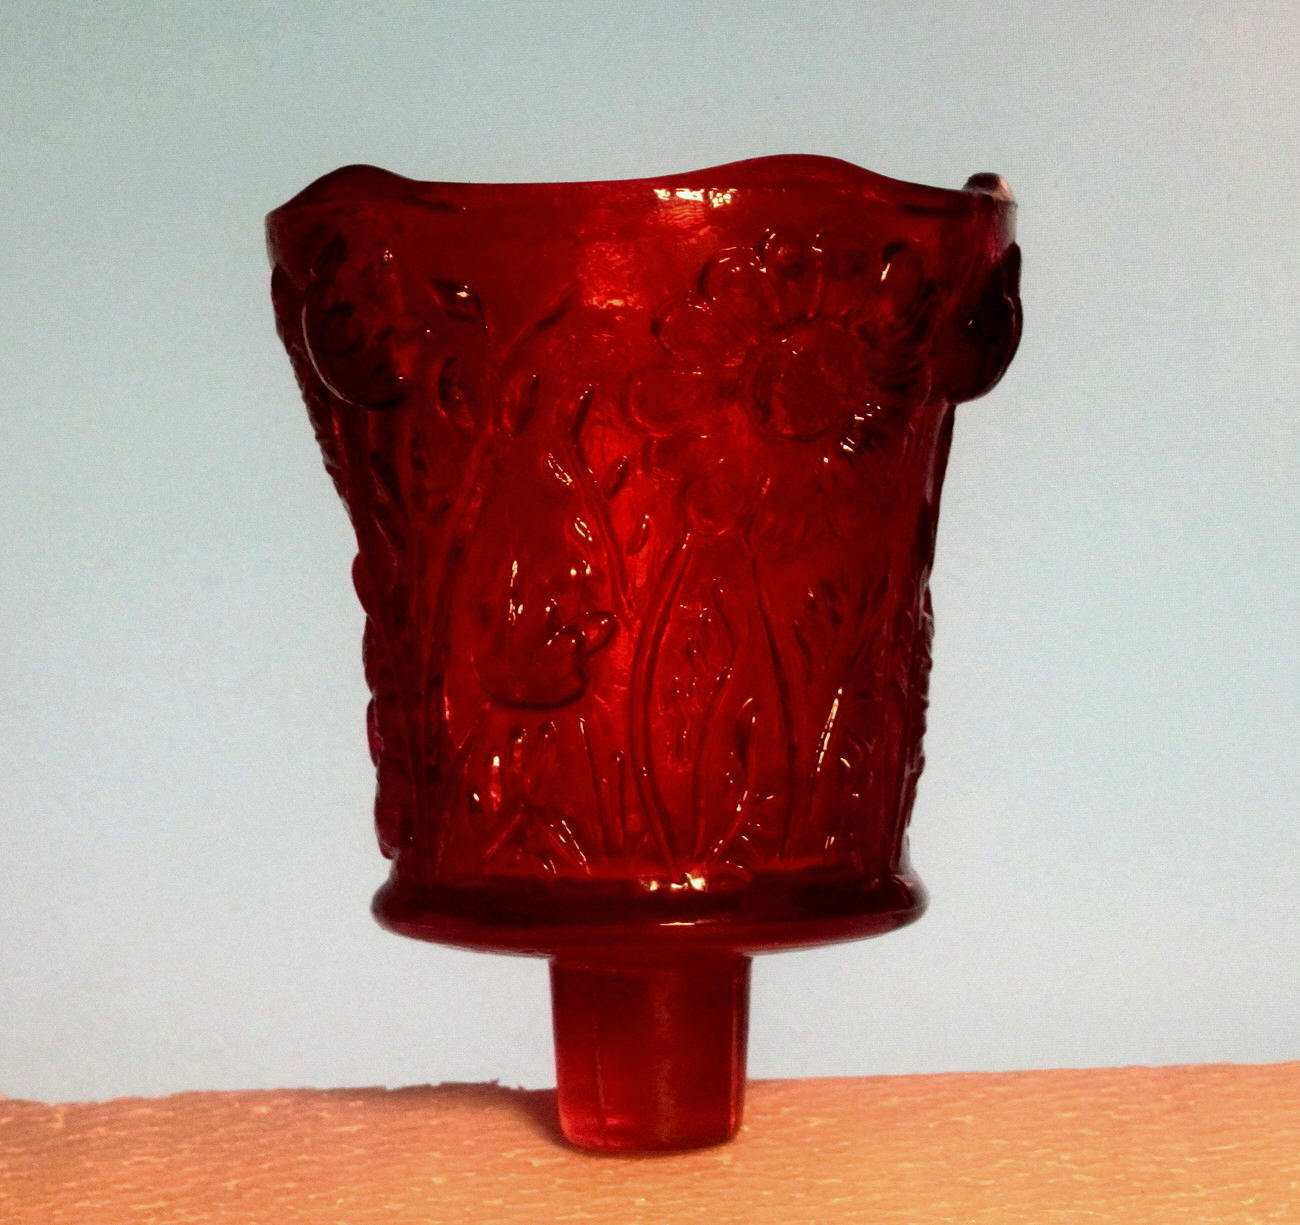 Home Interiors Peg Votive Cup Holder Glass Ruby Red Daisy Floral Candle Holders Accessories